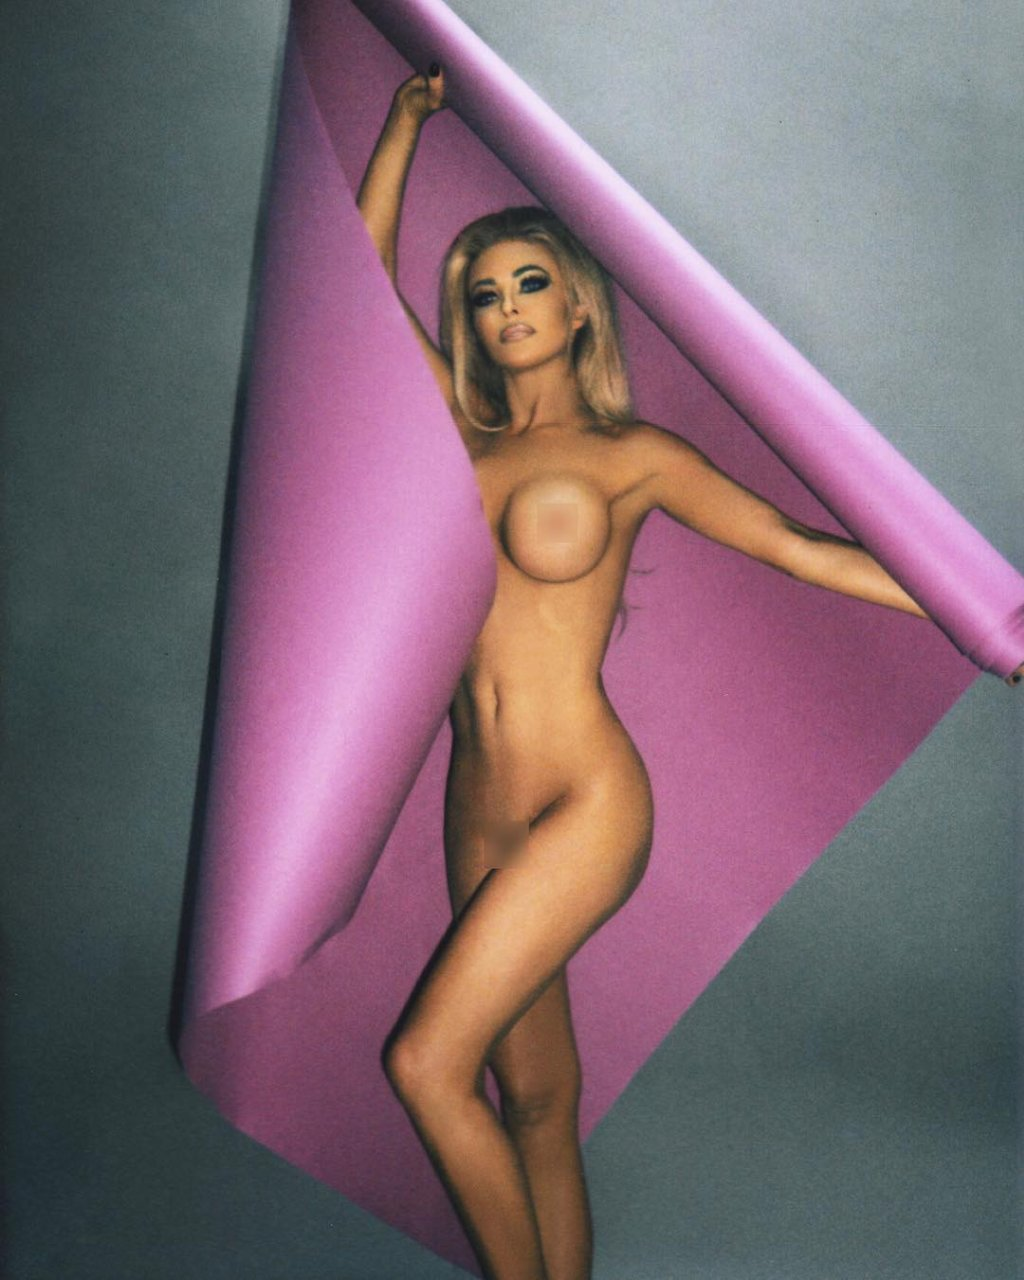 carmen electra naked and nude pictures